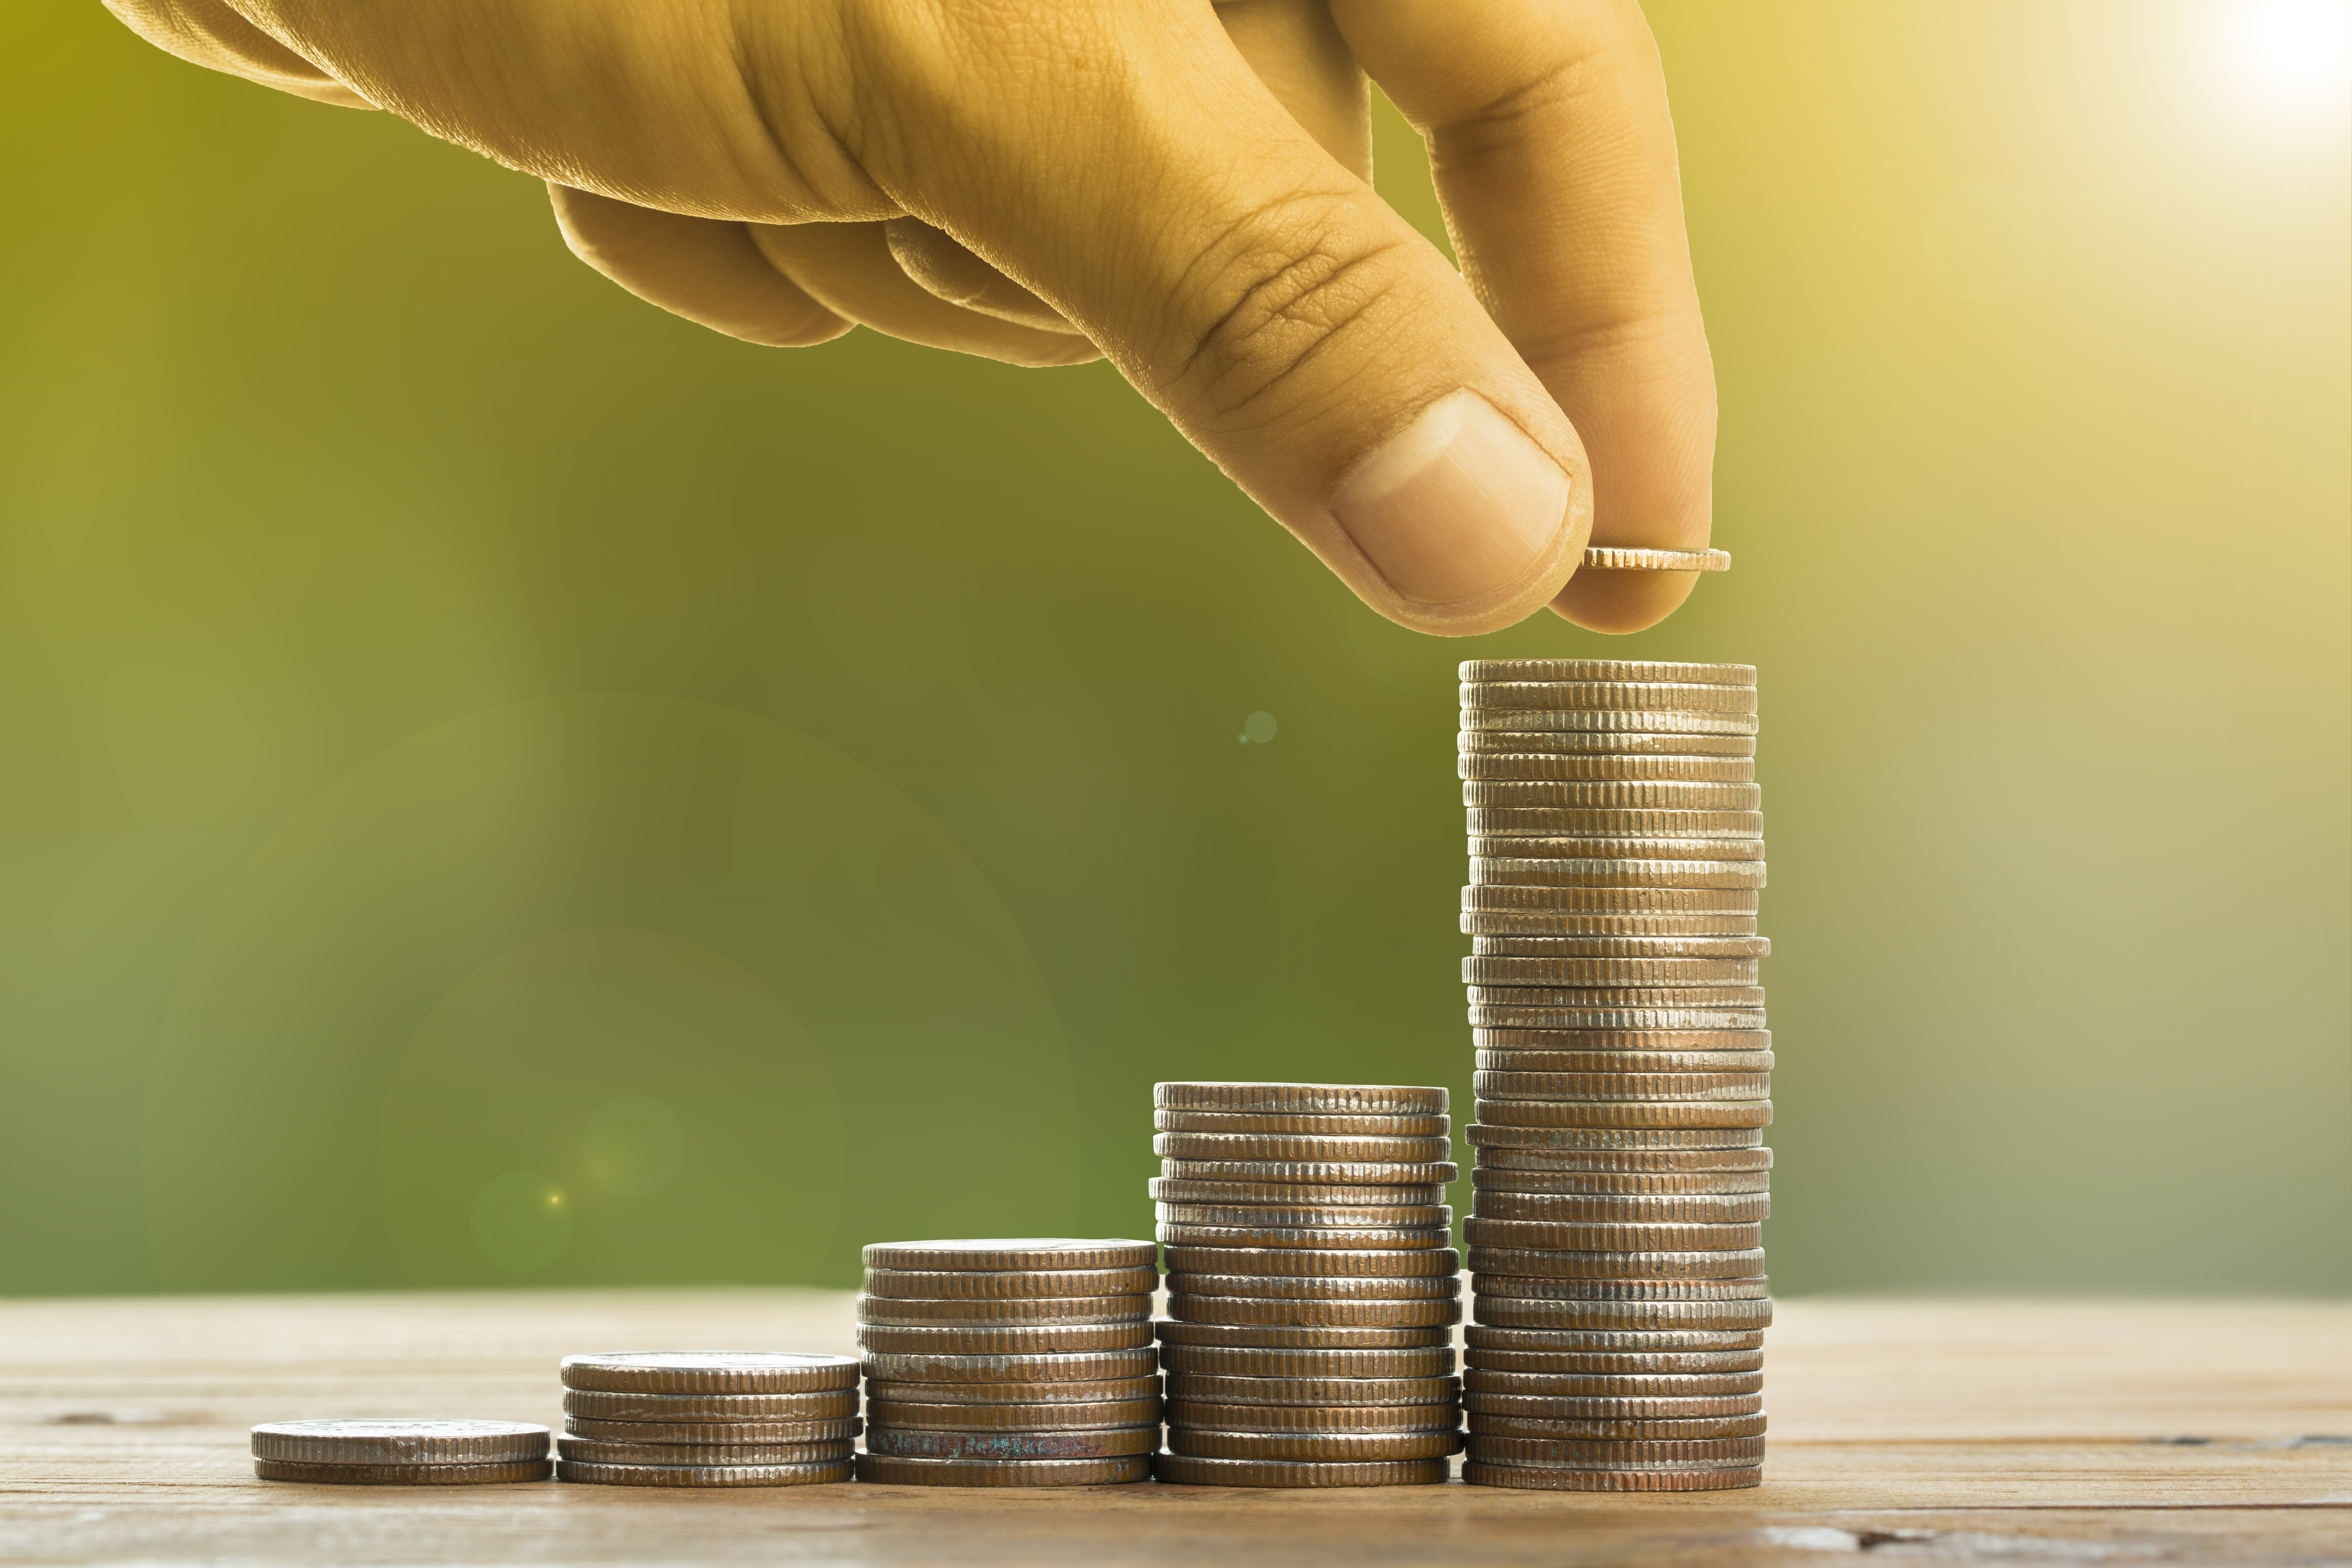 Entrepreneur Salaries: How Much Should You Pay Yourself?